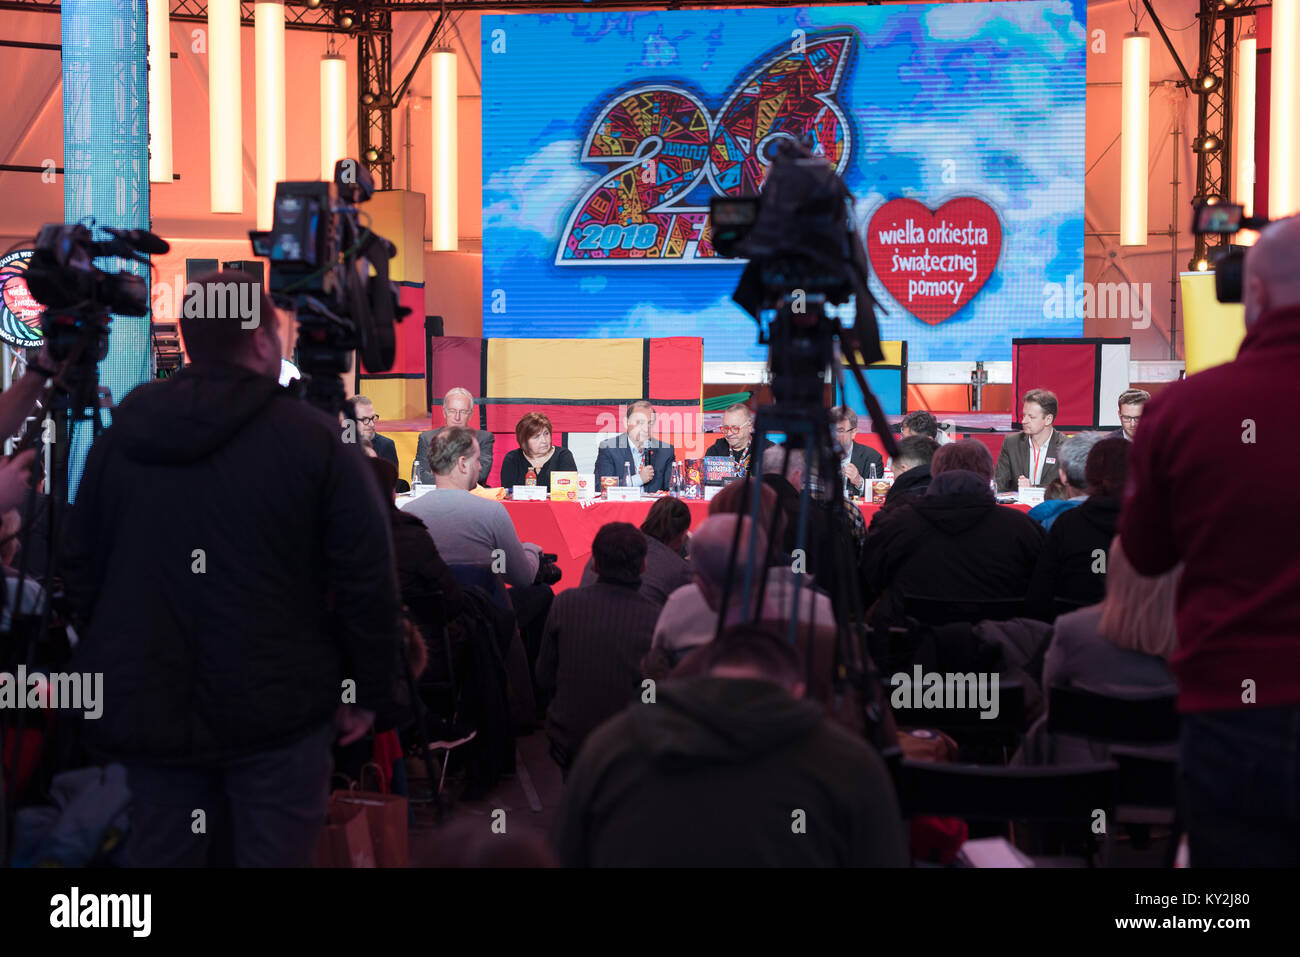 Warsaw, Poland 12th of January 2018. Press conference before the 26th final of the Great Orchestra of Christmas - Stock Image